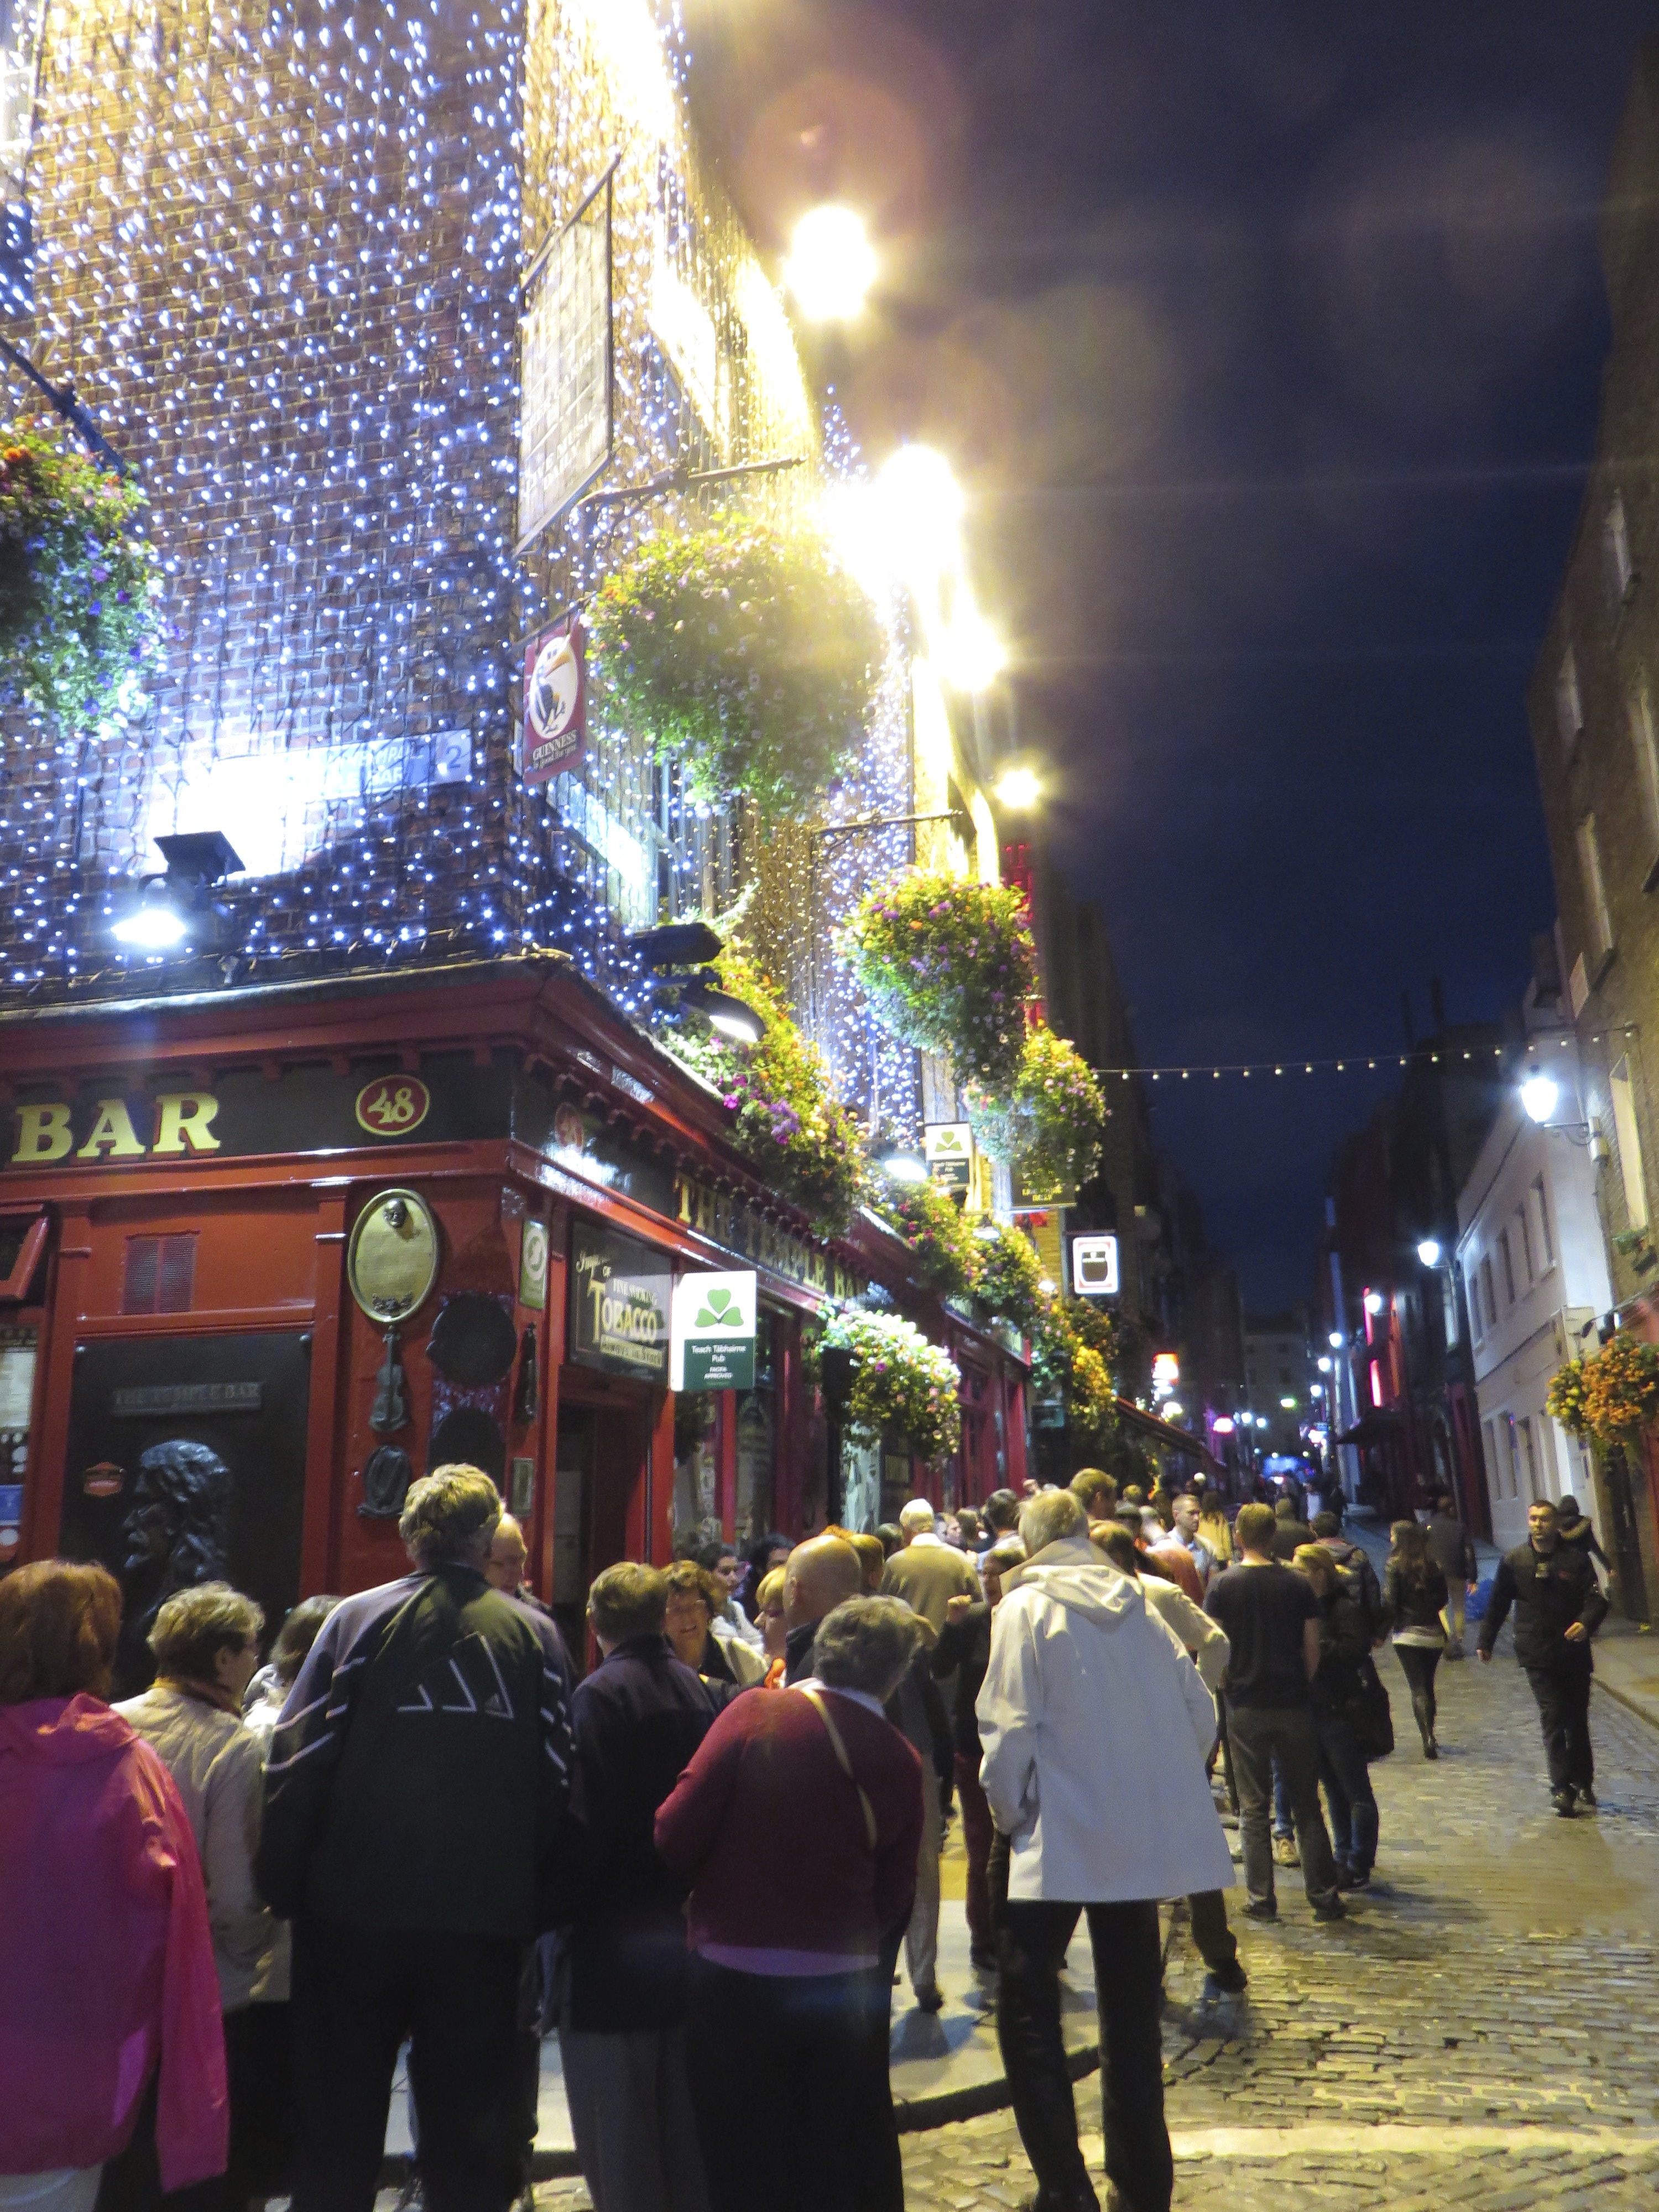 Temple Bar, where IS that poster?